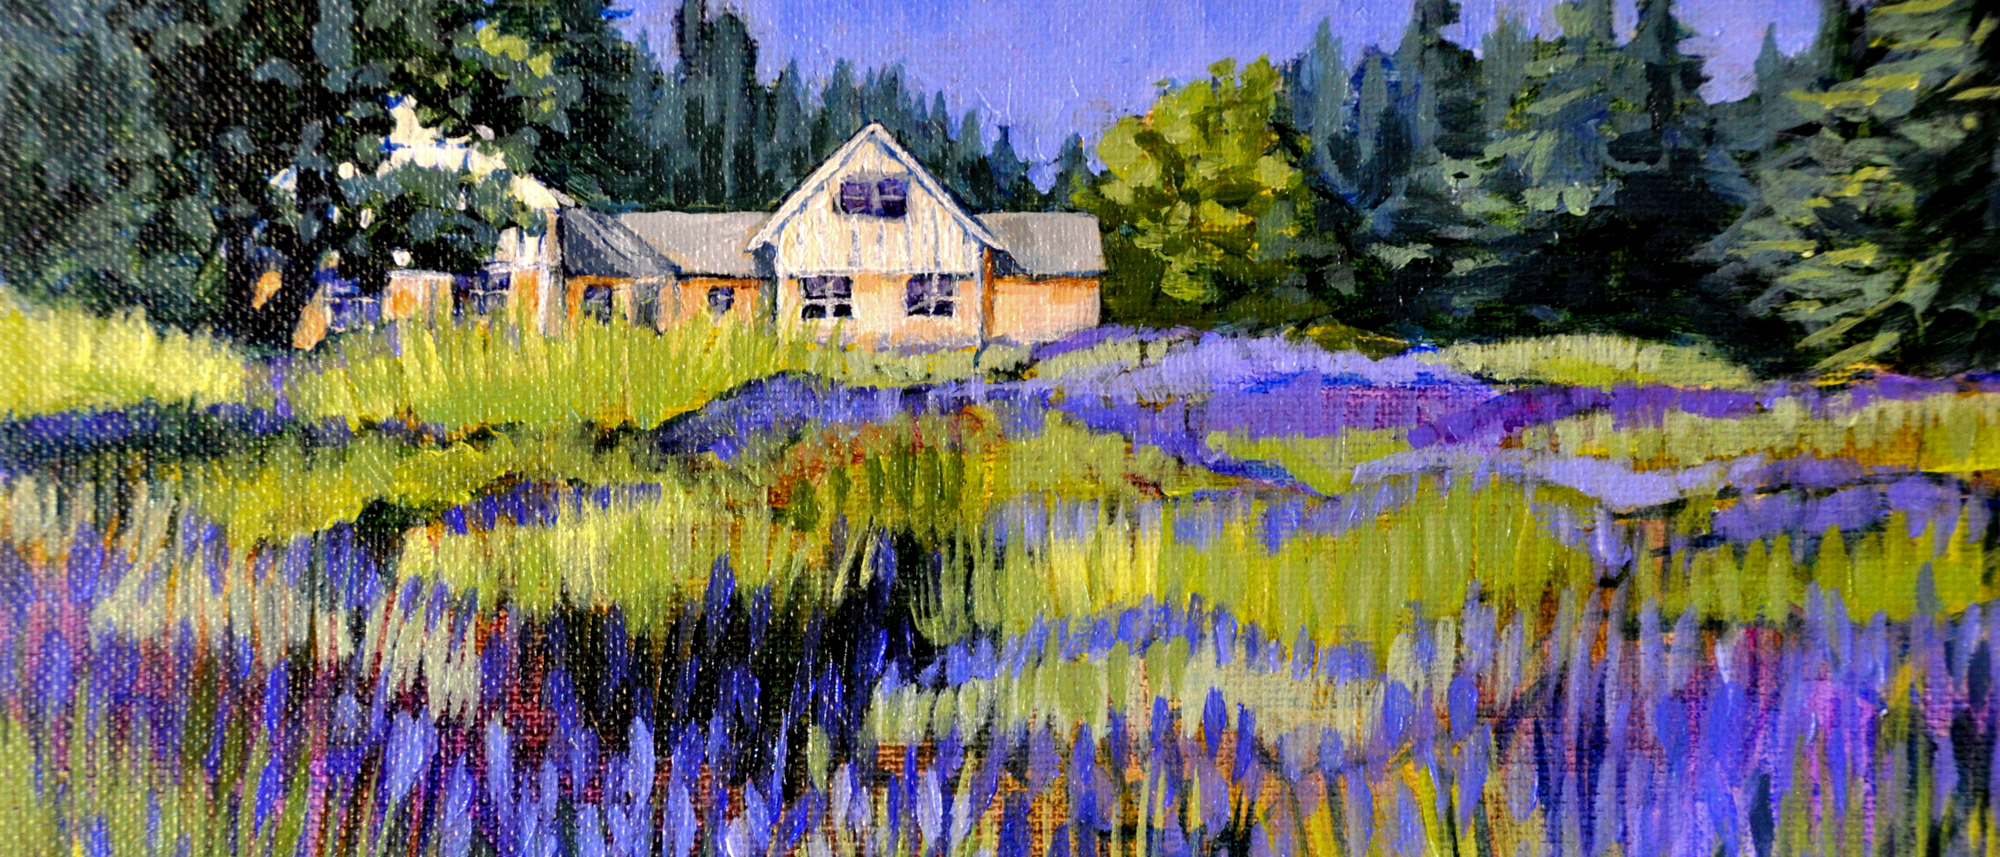 Cowichan Valley Lavender Labyrinth